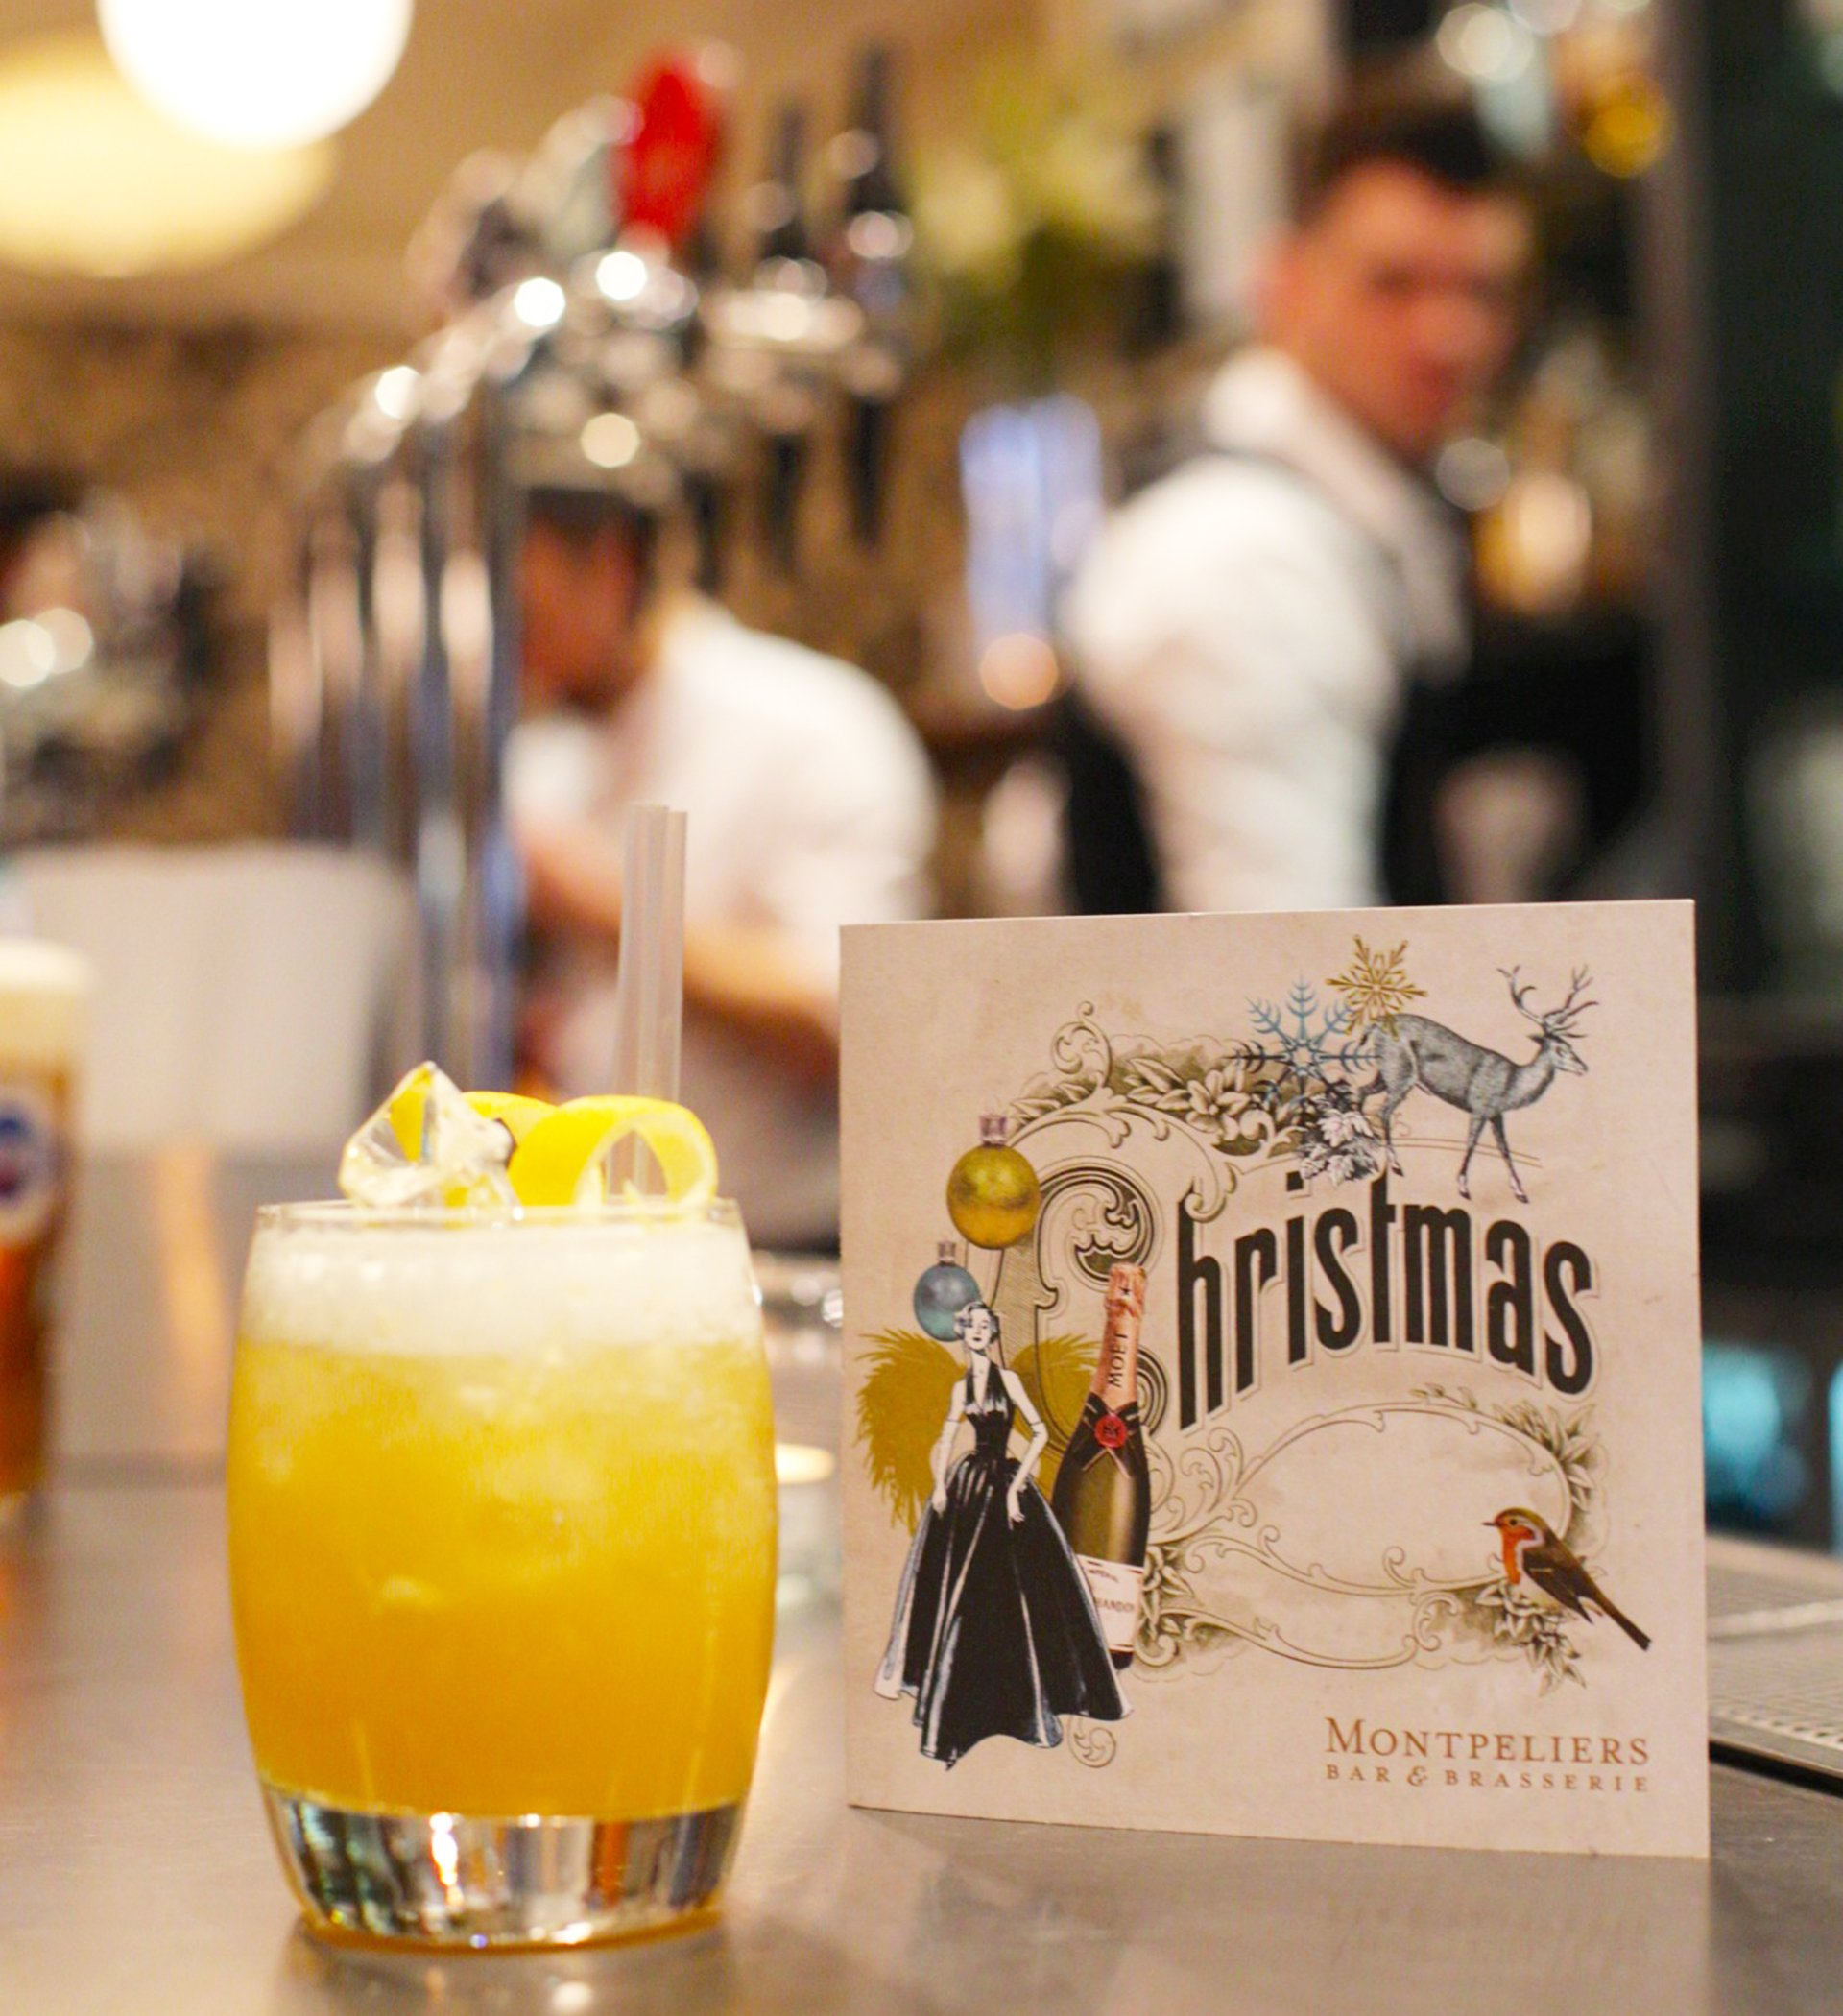 Artwork for Montpeliers vintage style Christmas drinks menus